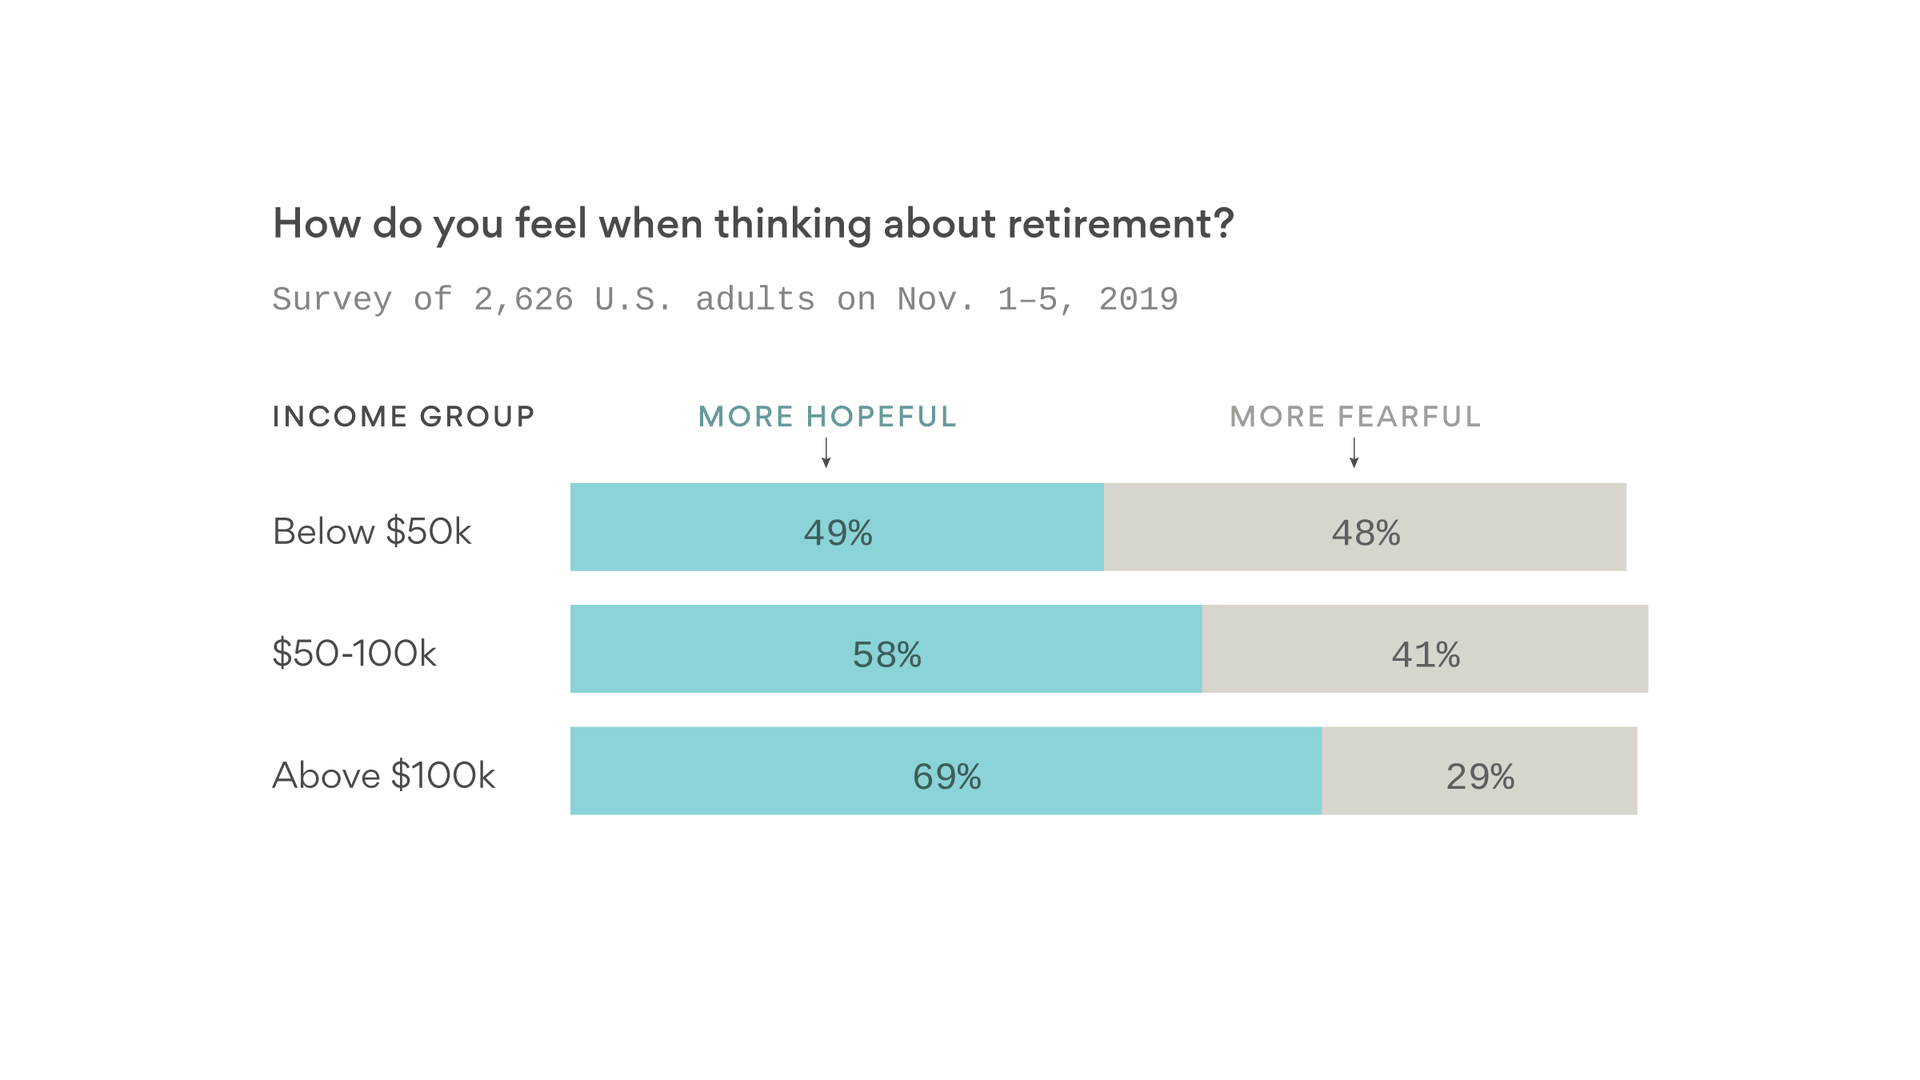 Wealthier Americans are more hopeful than fearful about retirement